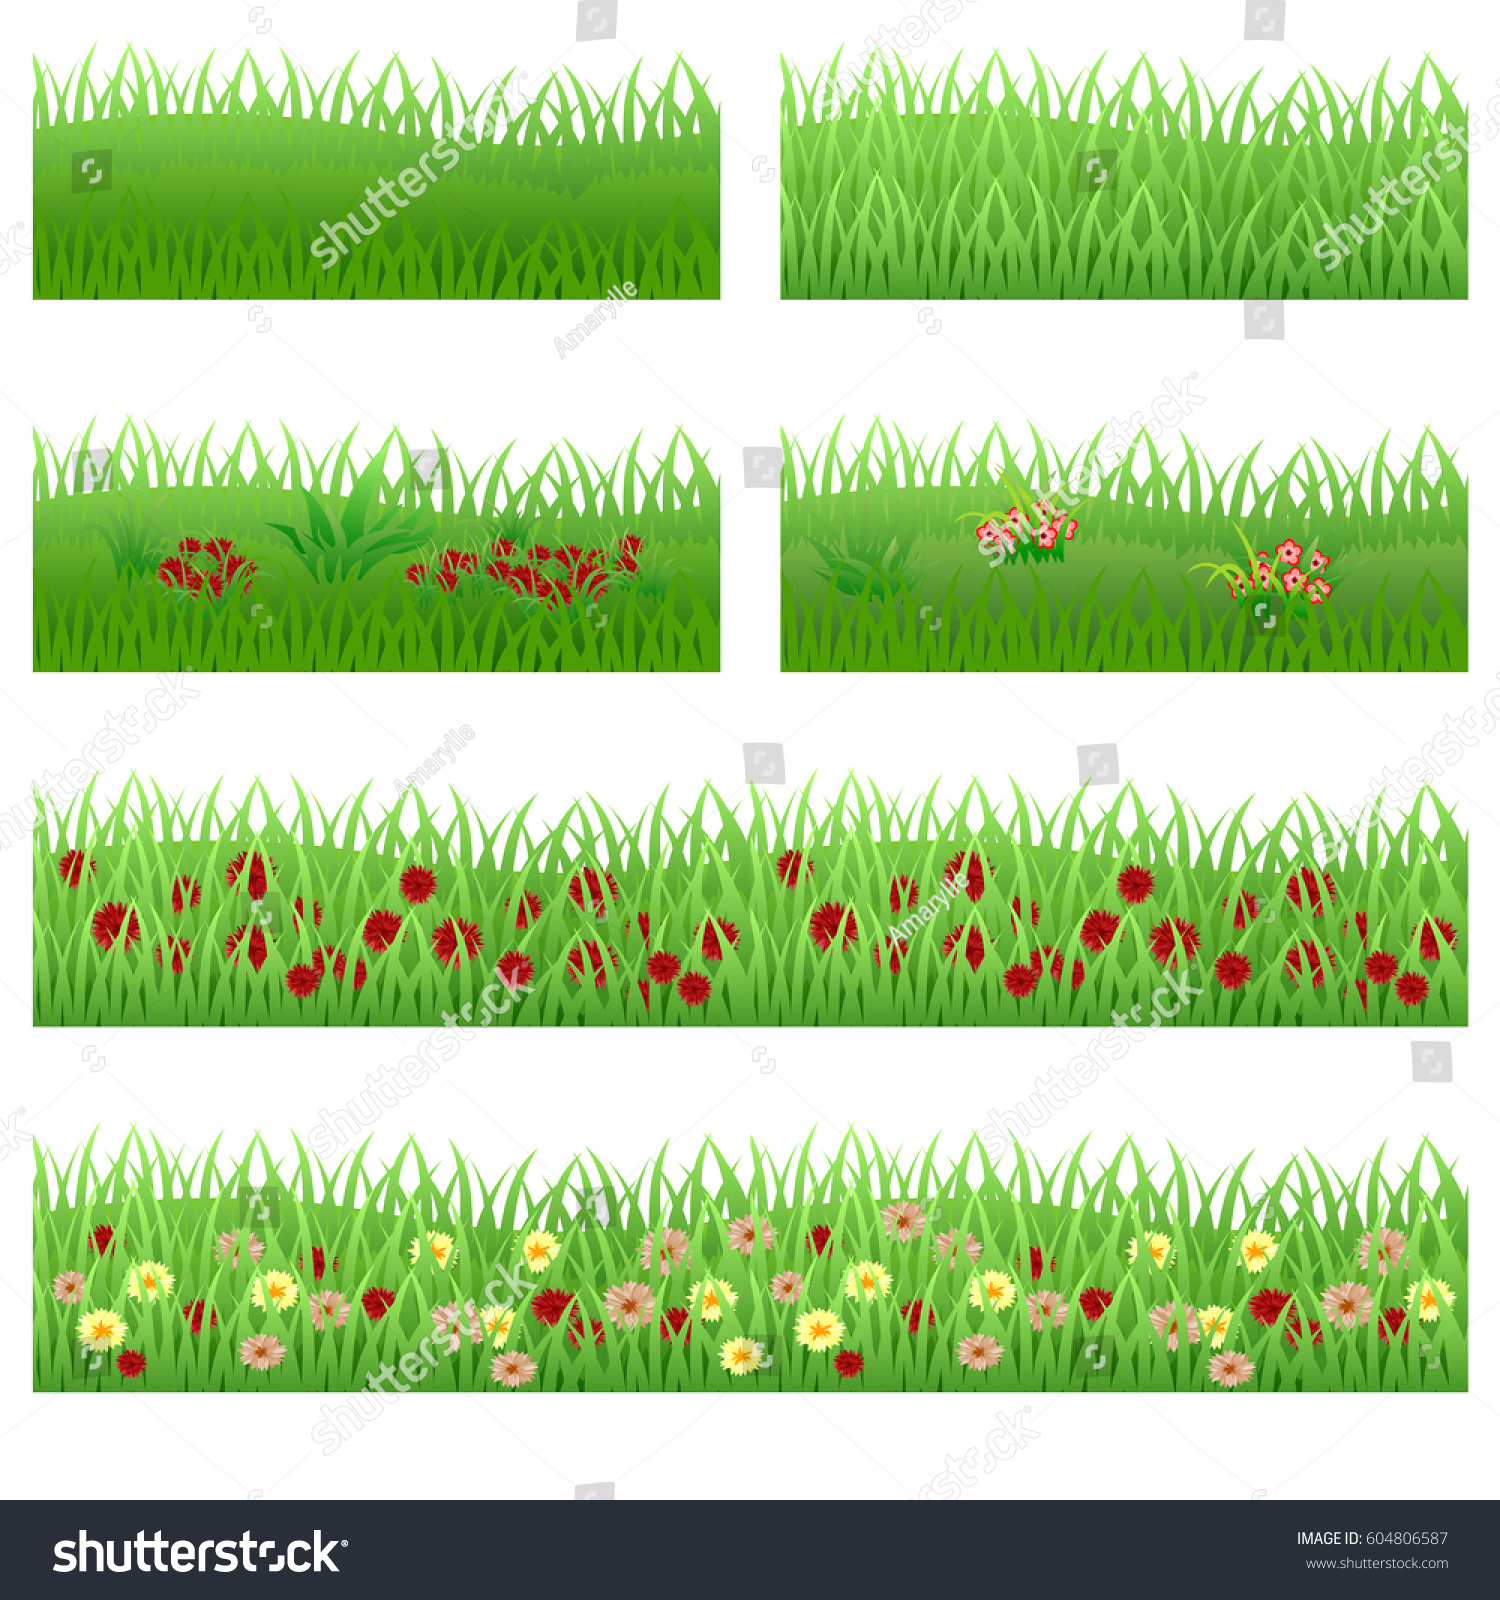 Set Garden Flowers Grass Flowers Green Stock Vector Royalty Free